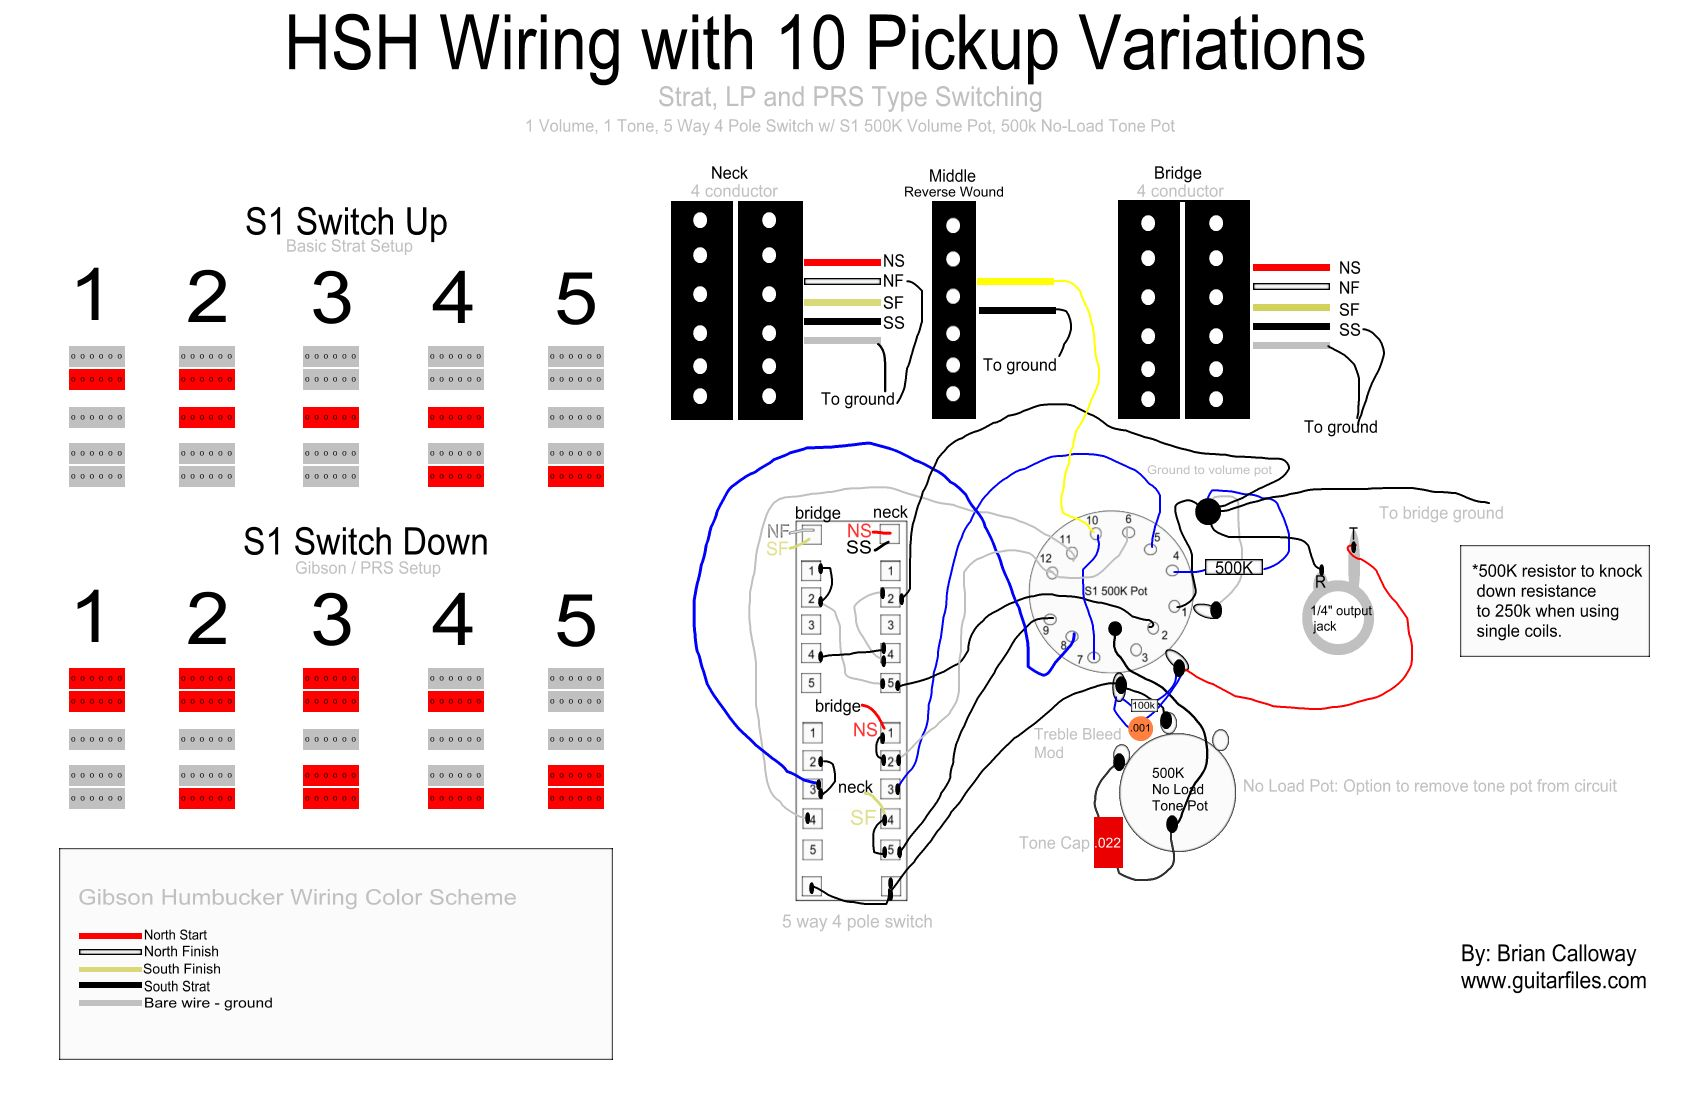 Hsh Guitar Wiring 10 Pickup Combinations 4 Pole Switch And S1 Strat Diagram Humbucker Switching System By Brian Calloway